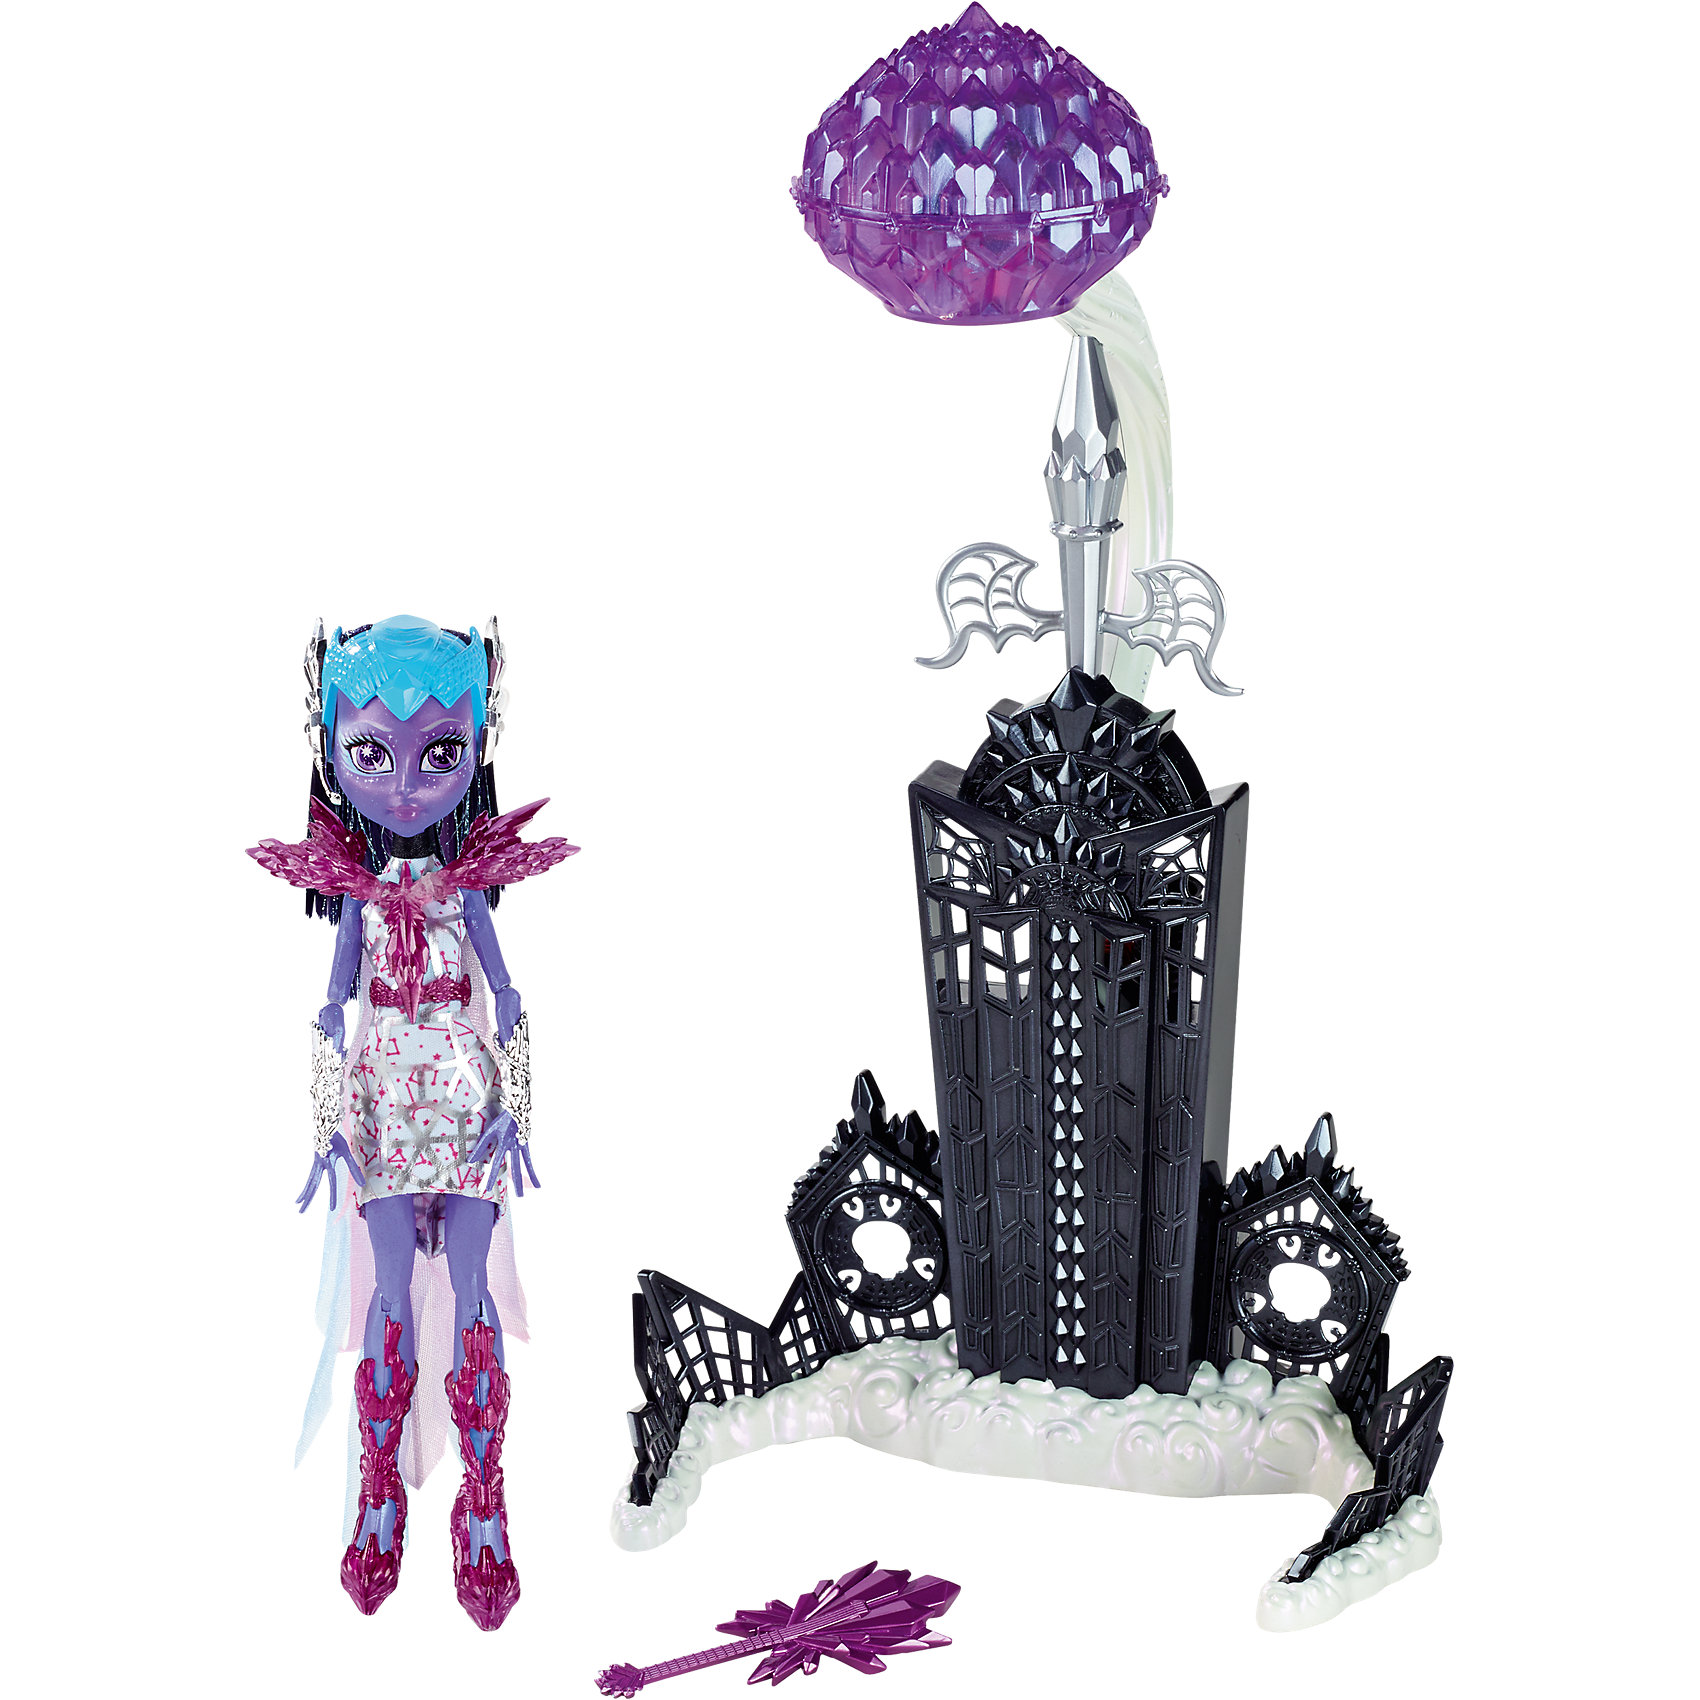 ����� ����� ���� c ������� �������, Monster High�������������� ����� ���� �� ������� ����������� �� ���� ���������� ����� ��������. ��� ������������ �������������, ������������ � ����� ������ � �������. ���� ����� ����, ���� � �������, ������ � ������ � ������ ������ ������� ������������ � ��������. � ���� ����� �������� �������, ��� �� ������� ���� � ������� ����� ��������� � ��� ��� �������. ��������� ��, ����� ����� ������, ������� ������� � �������. ��� �� ��� ���������������� � ����� ������������� �����������. ����� ����� � �������� ����-������ � ������� �������, �� ���� �������� ������� ��������, �� ����� � ������� ������� ������. ��������� ����� ����� ��������� ������������� ������ � �������������� ����������� �����, � ��������� � ��� �������, �� �������� �� ��� ������ � ������ �������.<br><br>�������������� ����������:<br><br>- ��������: �������, ��������.<br>- ������ �����: 28 ��.<br>- ������, ����, ���� ����� ���������. <br>- ������������: �����, ������, ����������, ���������, ������. <br><br>����� ����� ���� c ������� �������, Monster High (������ ���) ����� ������ � ����� ��������.<br><br>������ ��: 490<br>������� ��: 330<br>������ ��: 101<br>��� �: 1090<br>������� �� �������: 72<br>������� �� �������: 120<br>���: �������<br>�������: �������<br>SKU: 4132327